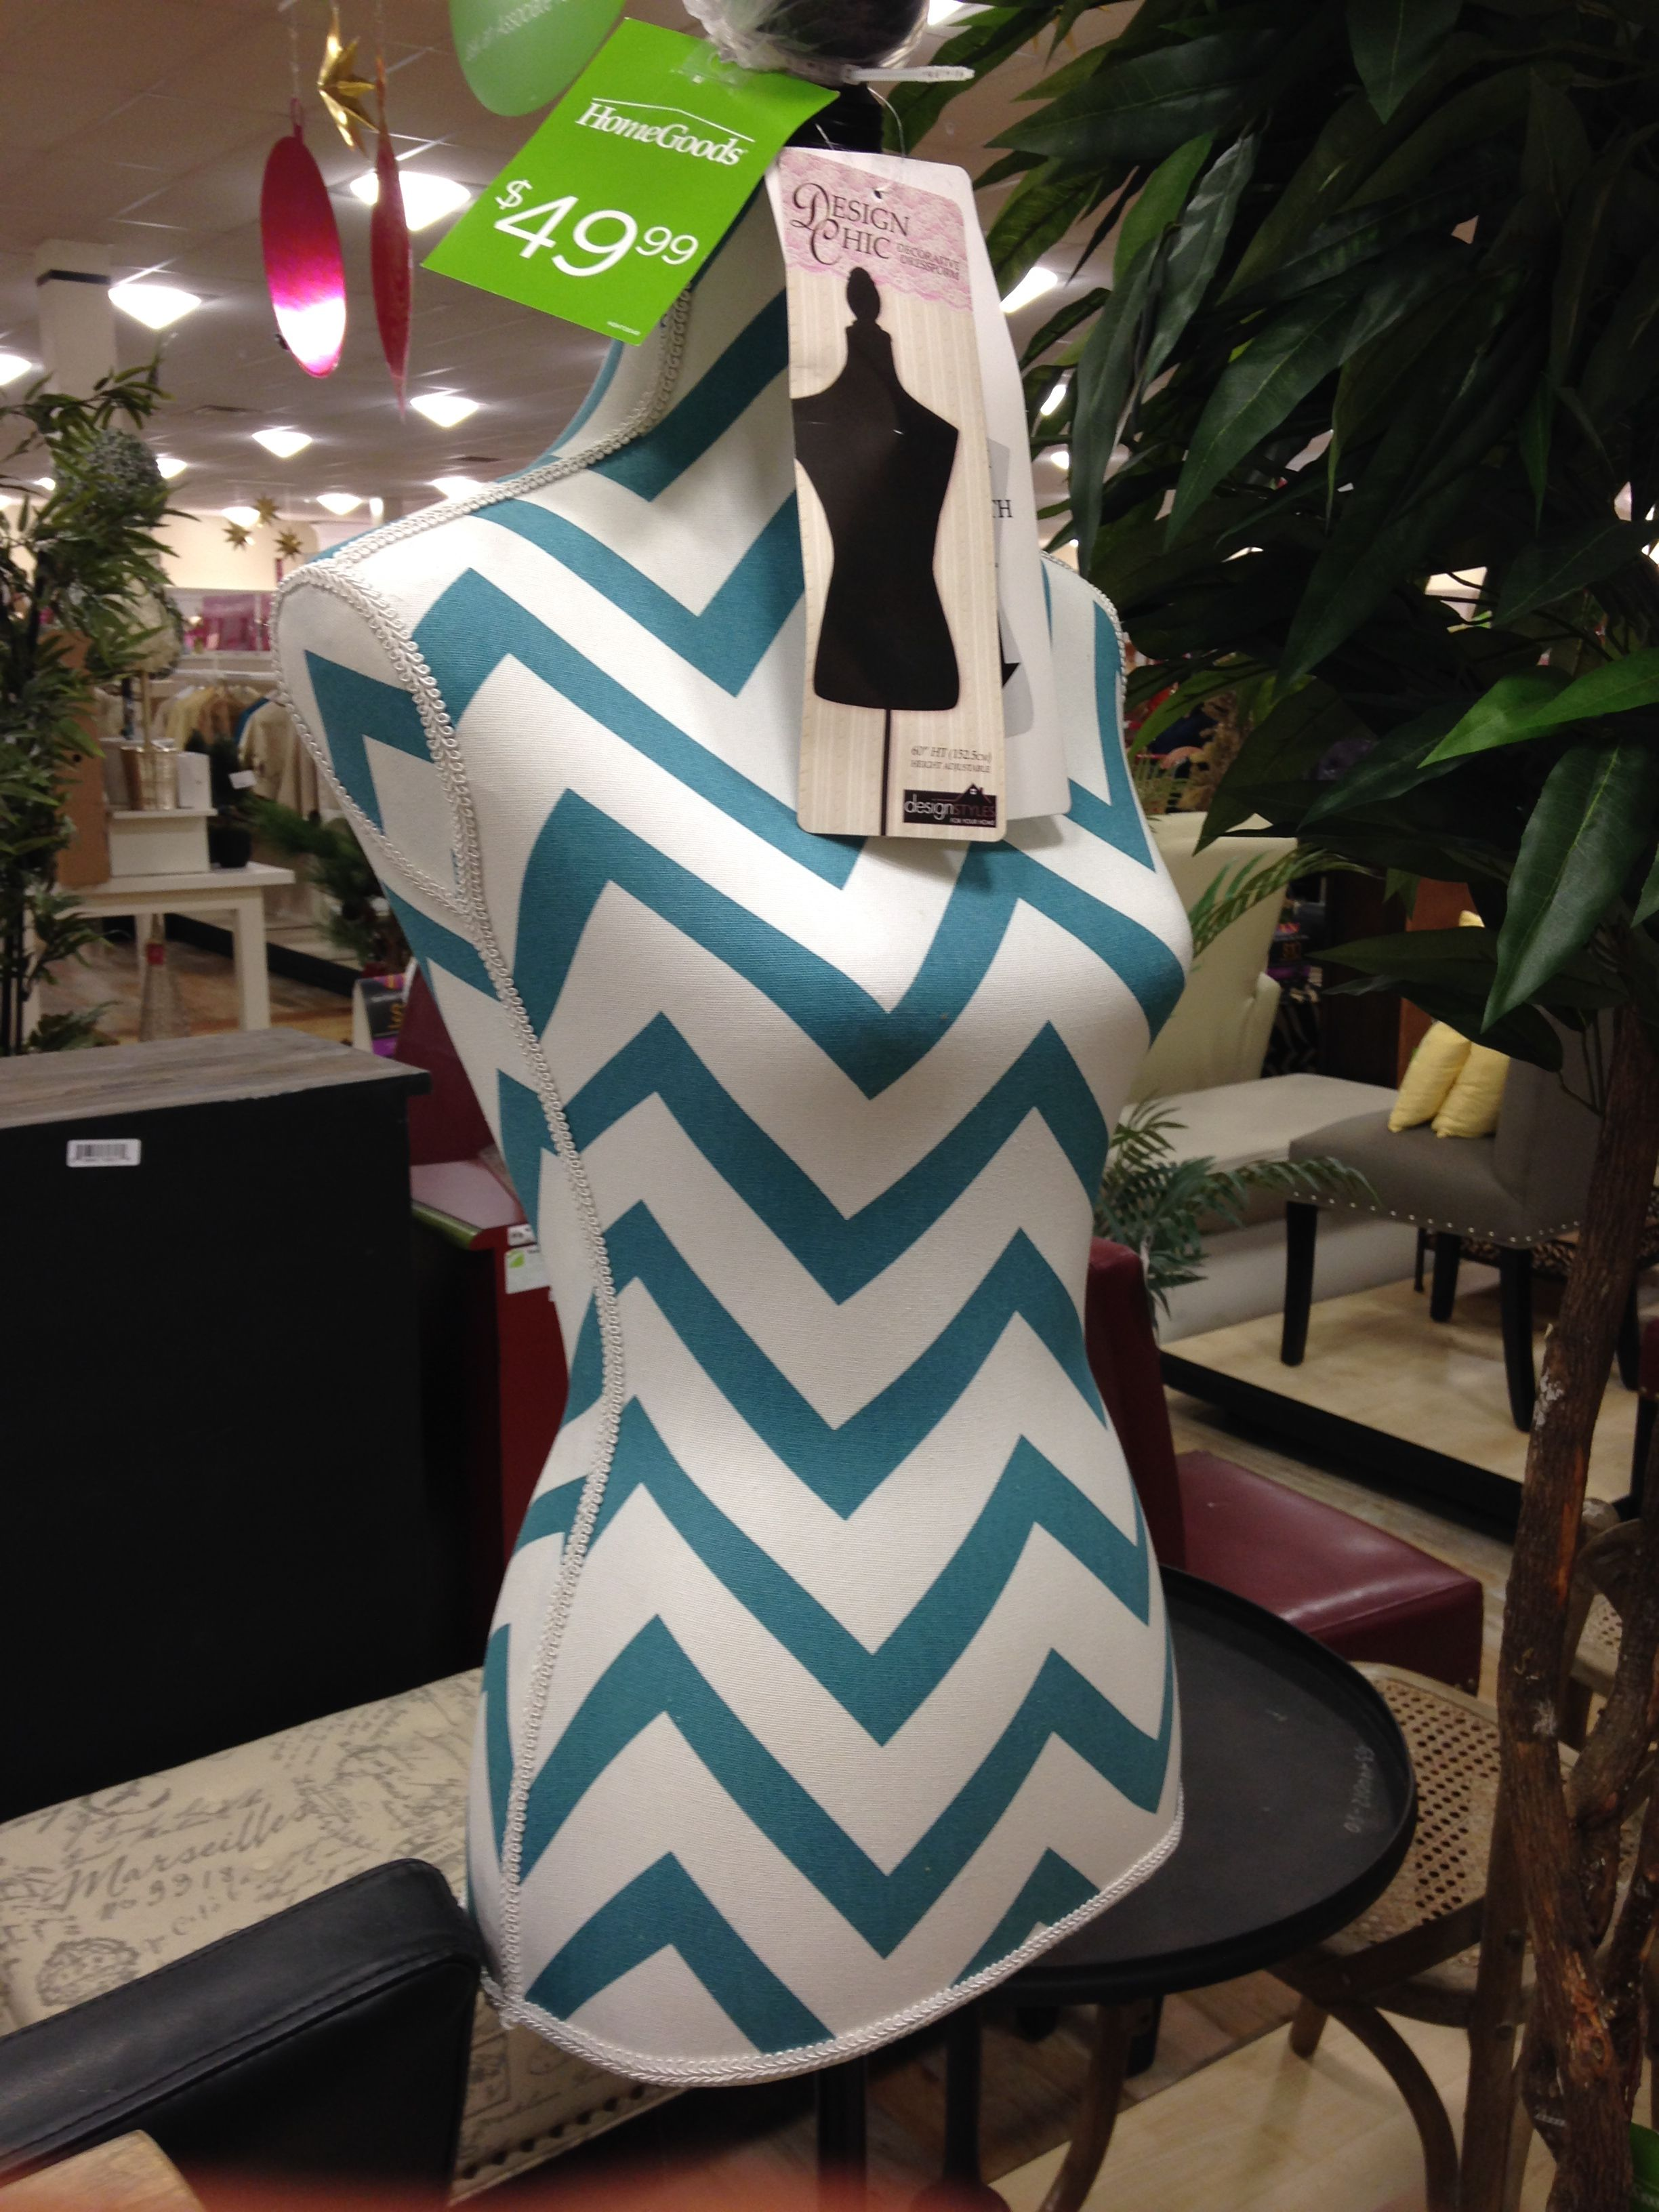 TJ Maxx Home Goods Decorative Dress Form. TJ Maxx Home Goods Decorative Dress Form   Interior Design